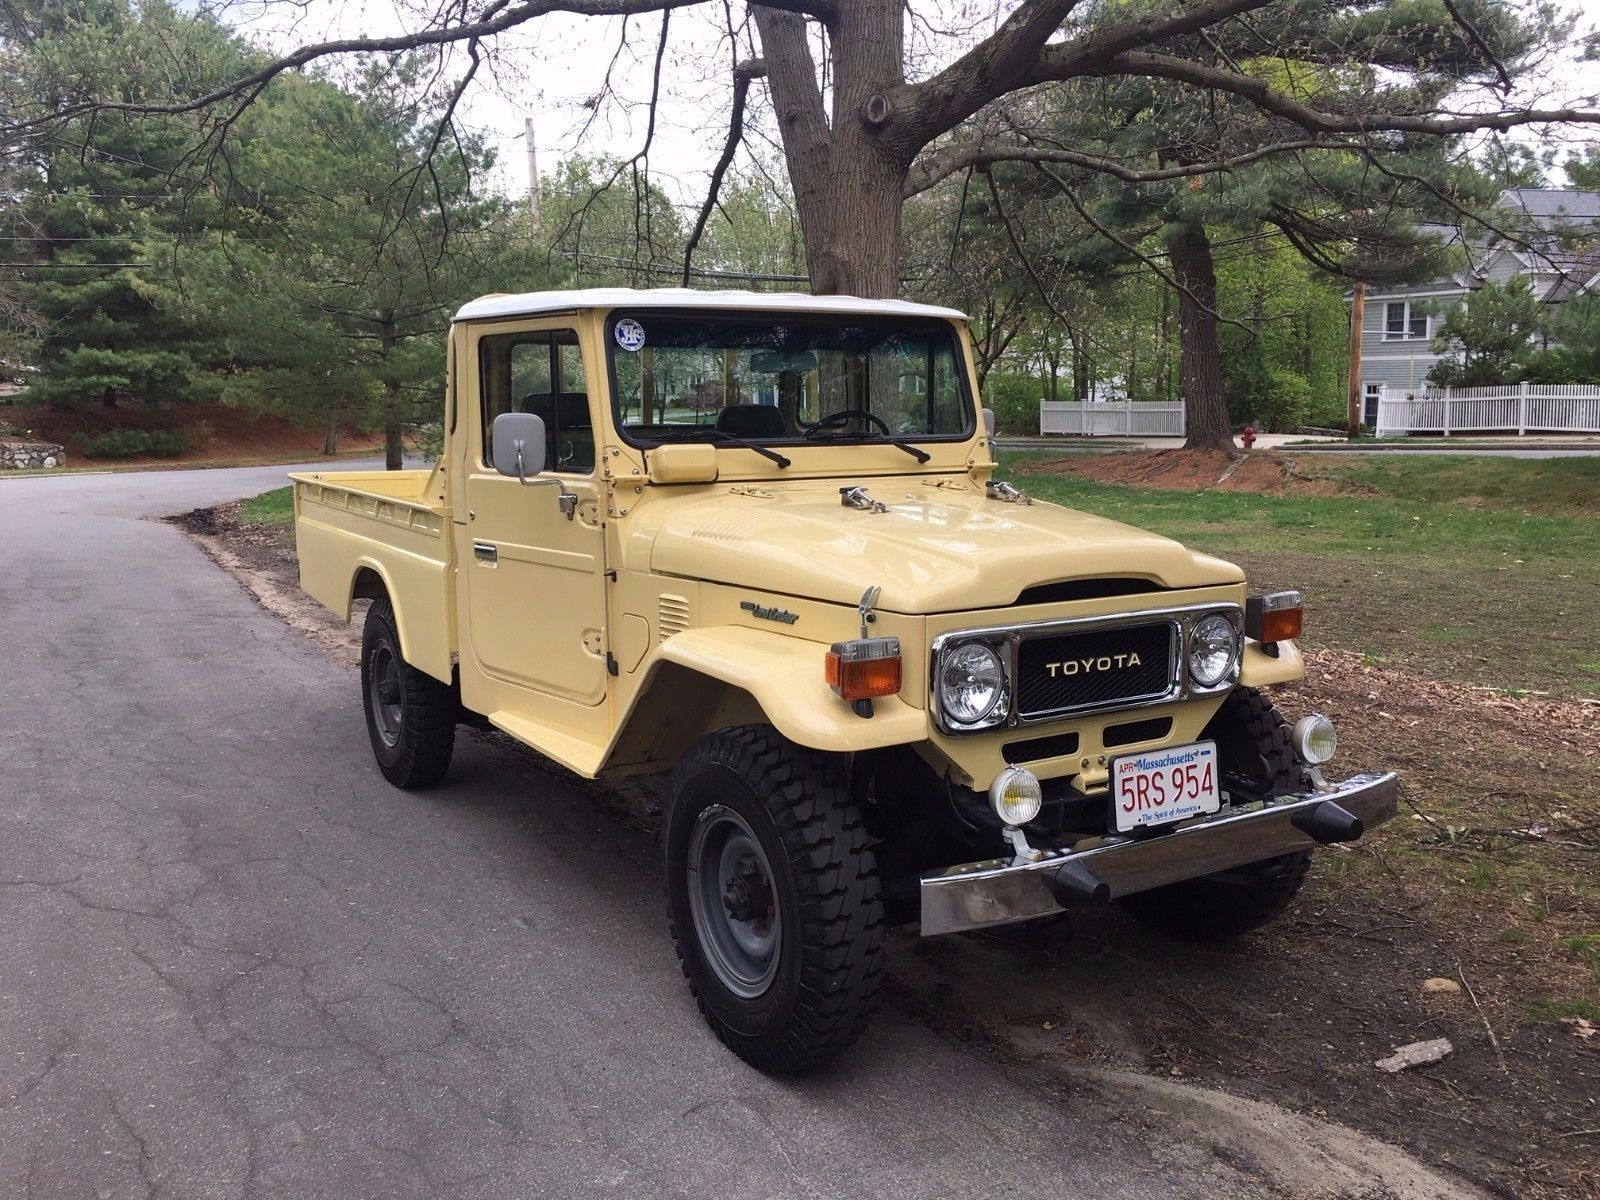 Restored 1981 Toyota Land Cruiser Pc11 Offroad For Sale